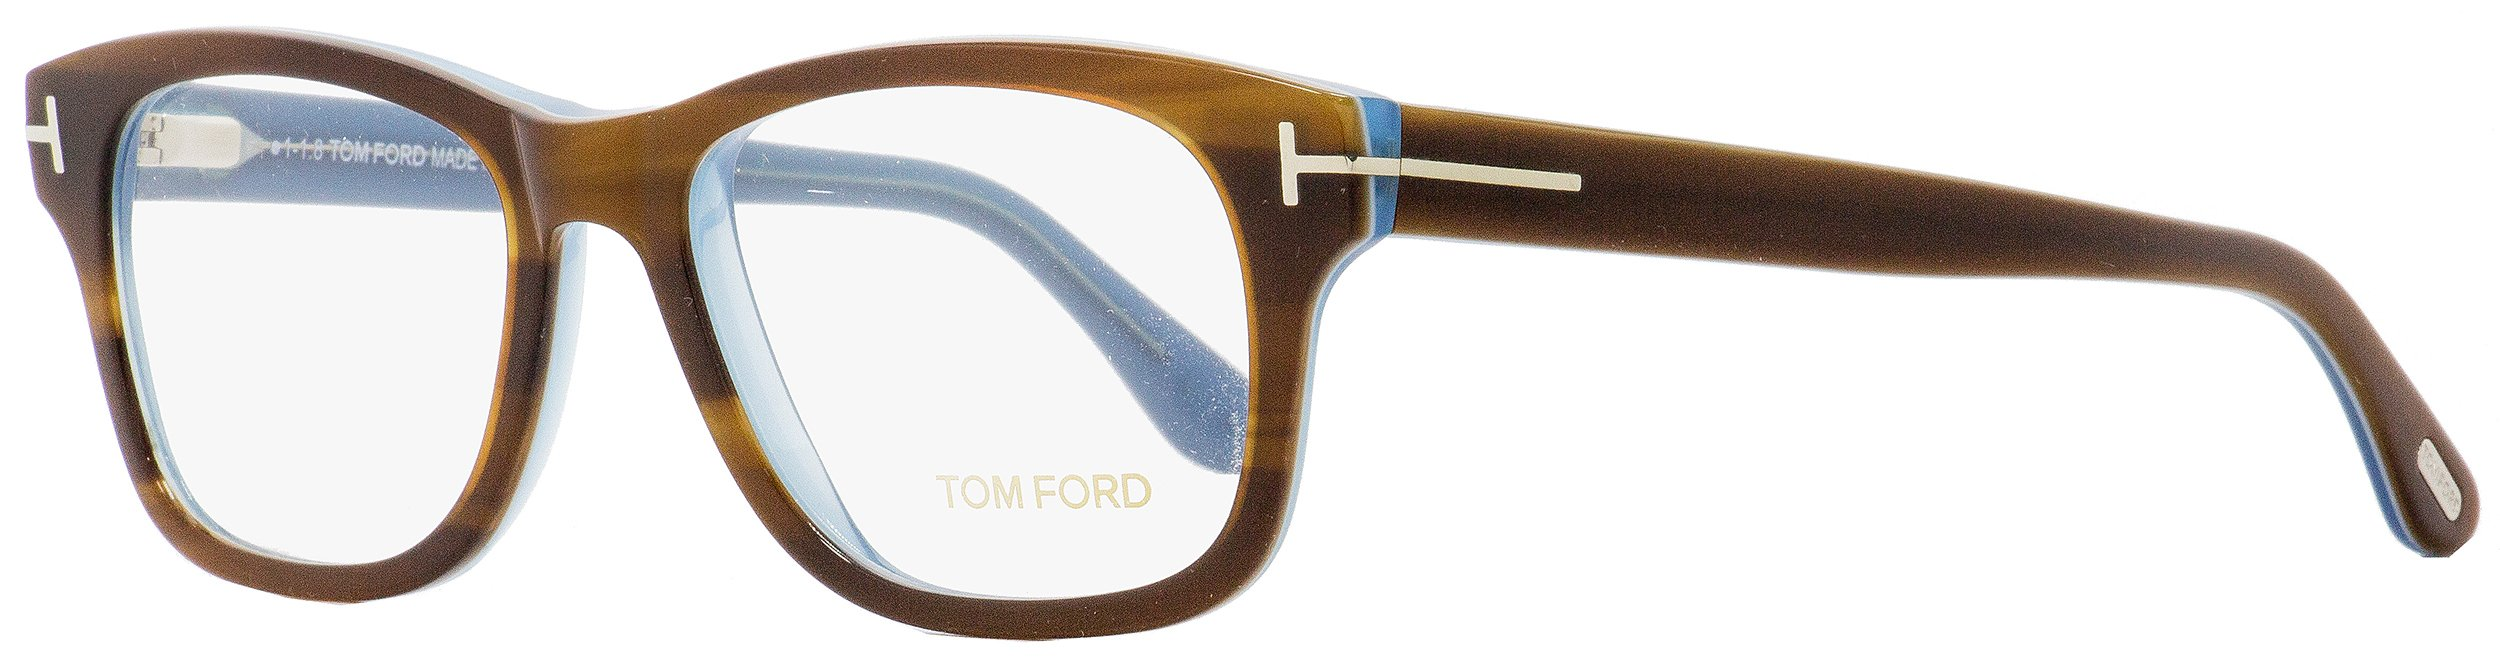 21bb10e389 ... 5429 055 Yellow Brown Havana   Demo Lens 45mm Eyeglasses.  117.95. Eyeglasses  Tom Ford TF 5147 FT5147 056 havana other